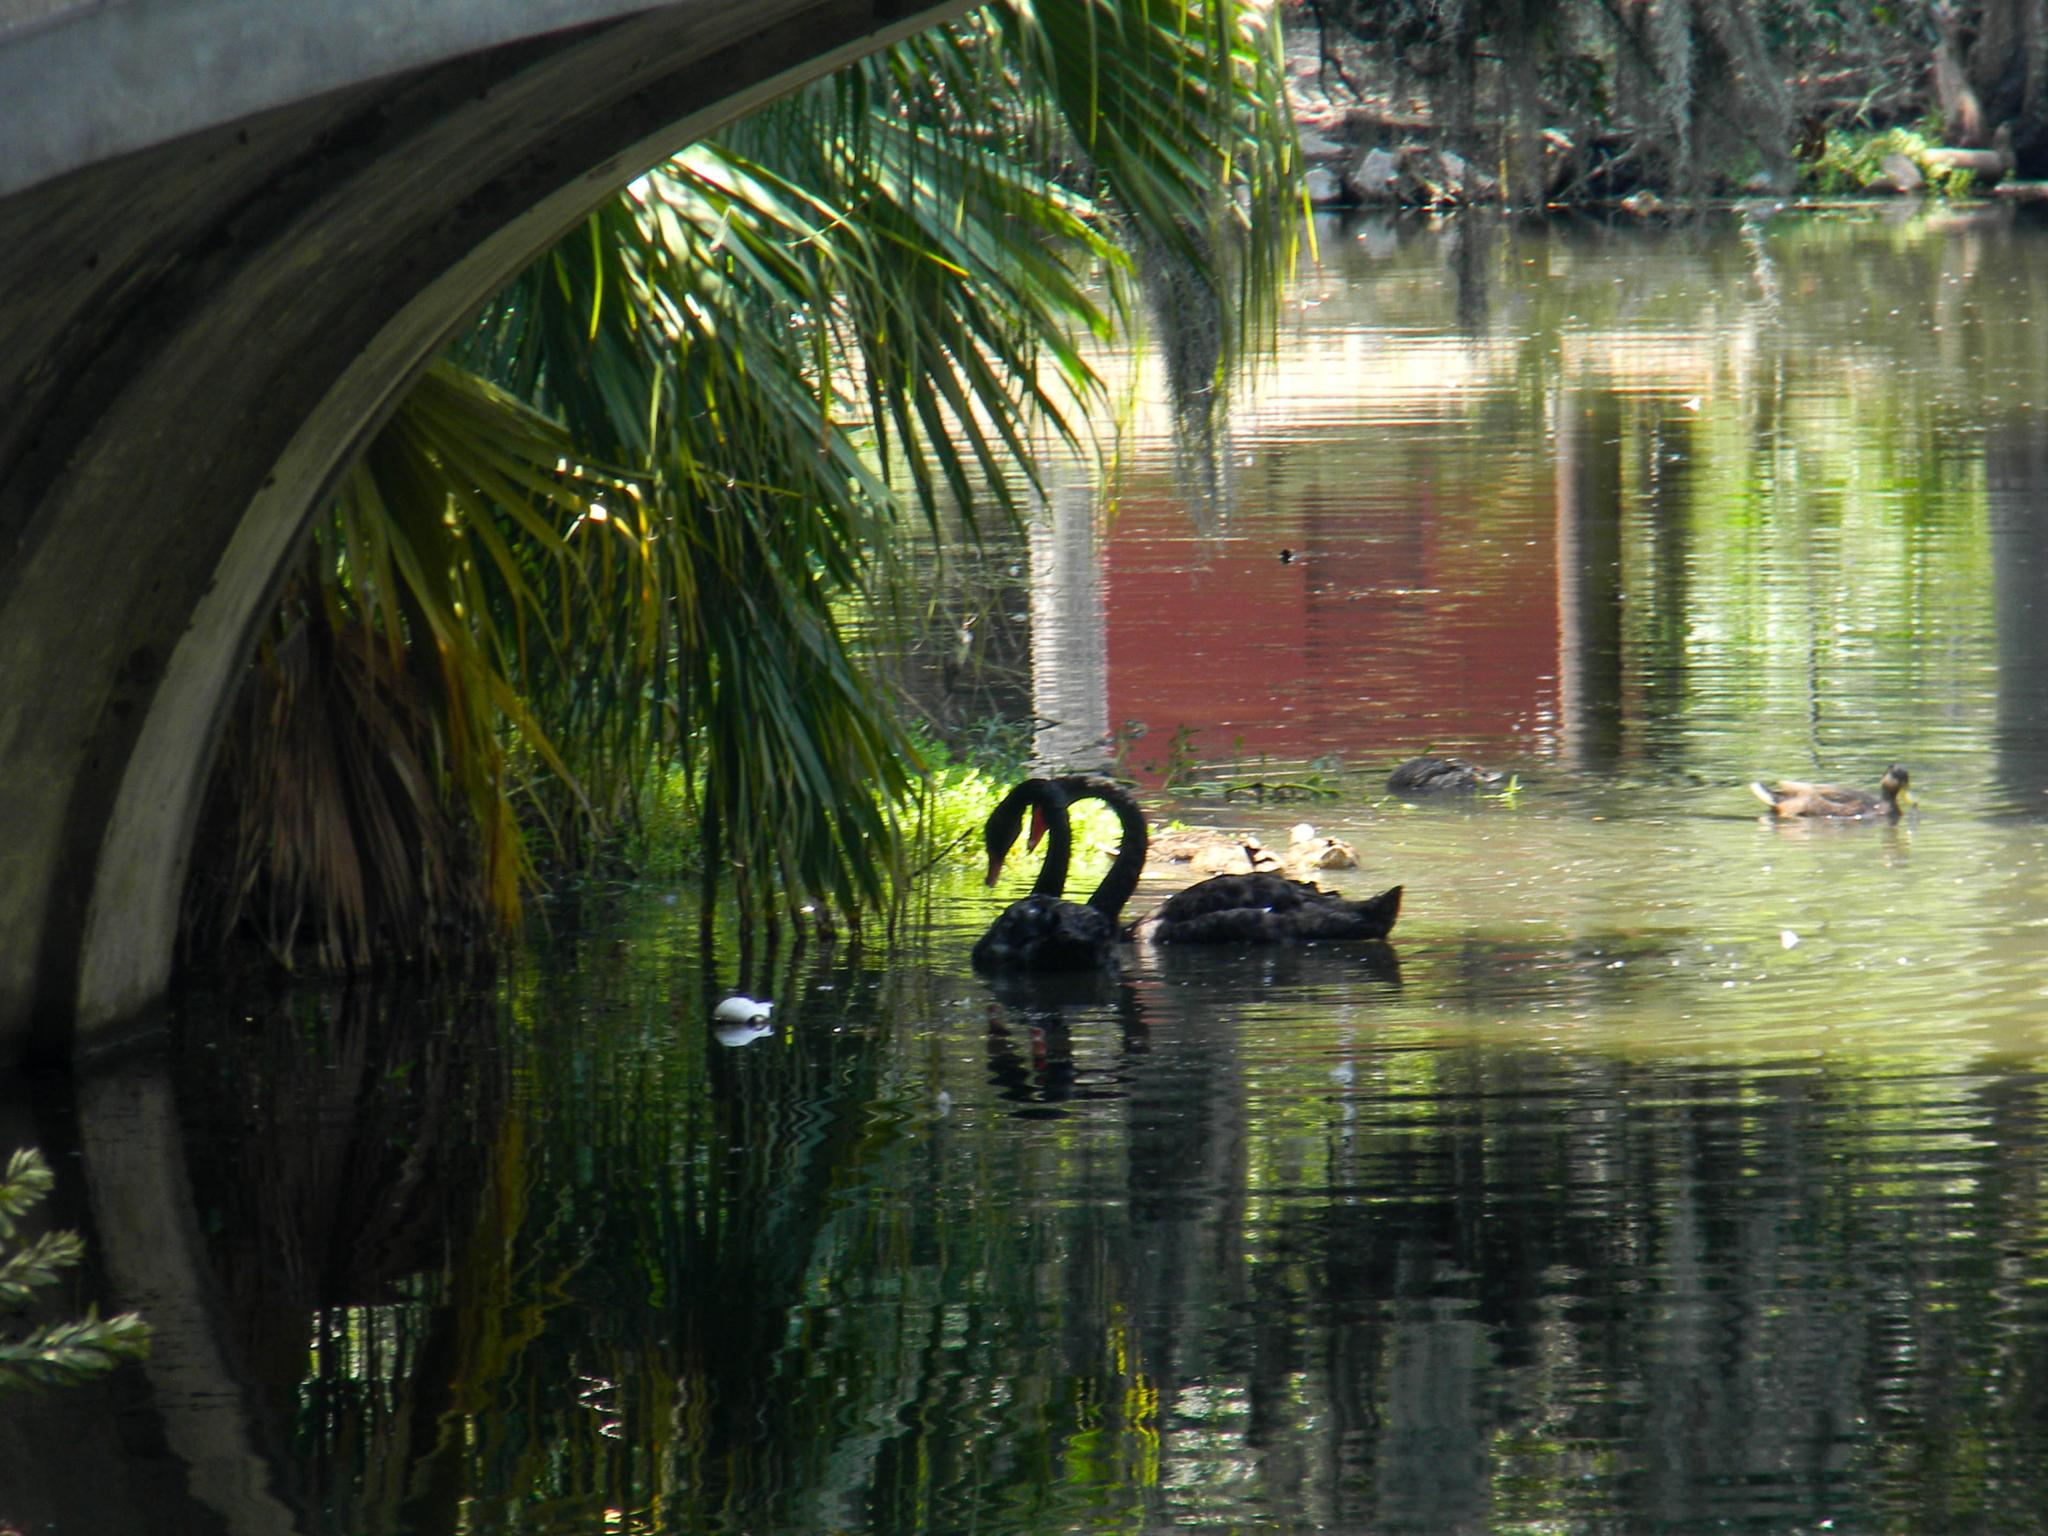 Waterfowl at New Orleans Sculpture Garden by The Beauty of Nature Photography by Nicole Crabtree